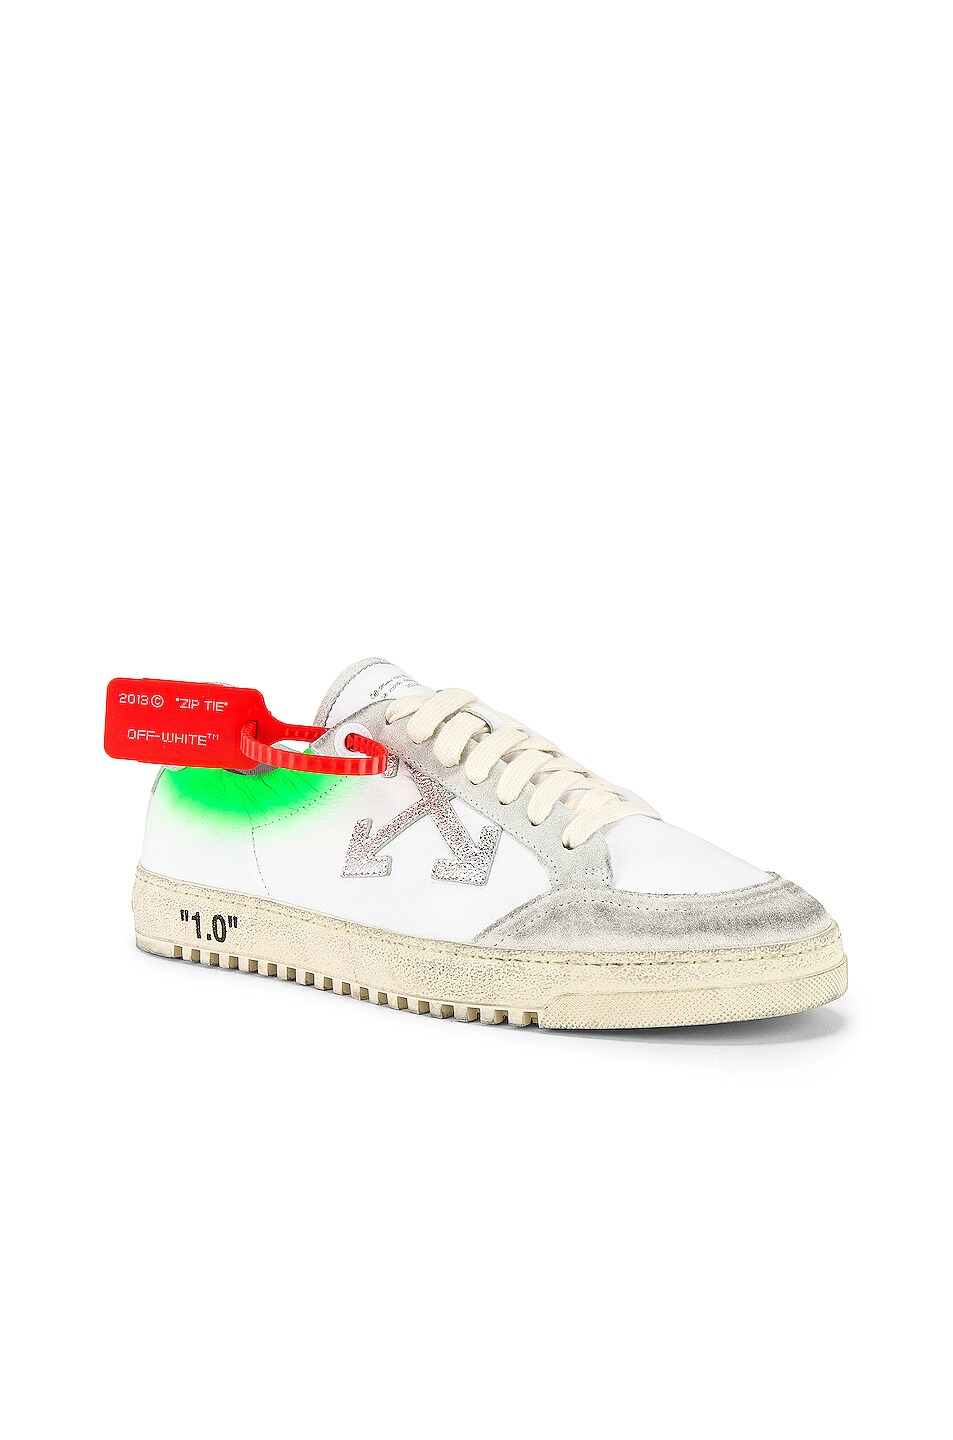 Image 1 of OFF-WHITE 2.0 Sneaker in White & Green